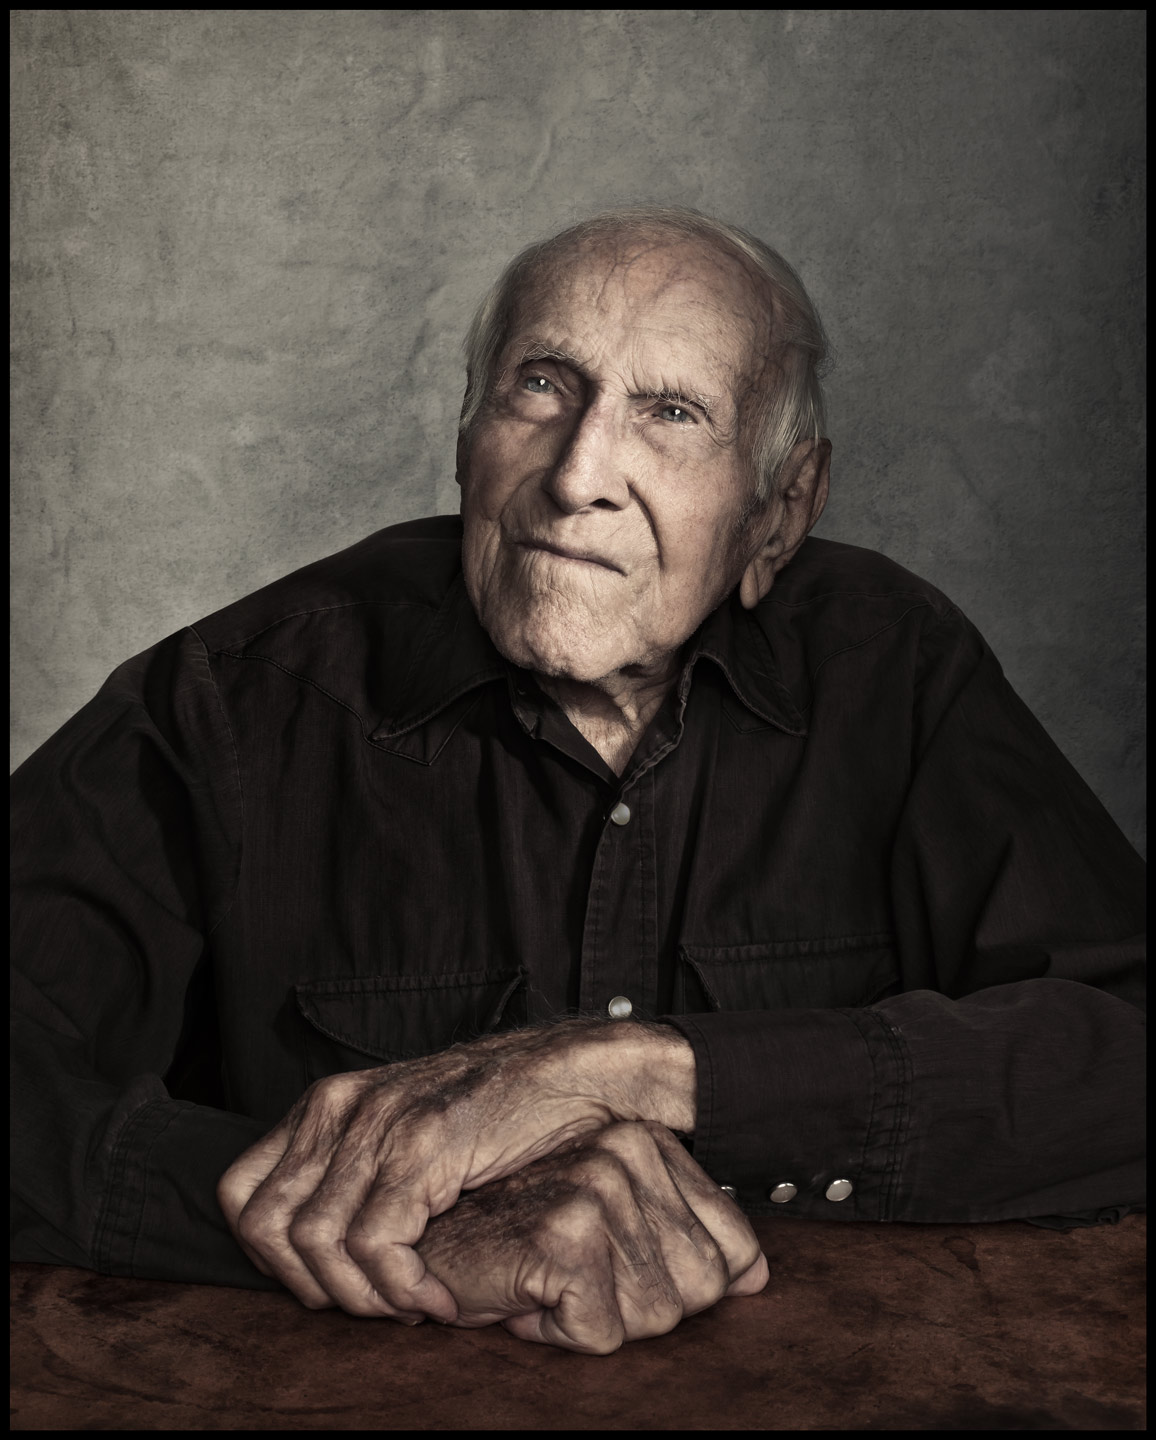 Louis Zamperini - Los Angeles, CA - Runner